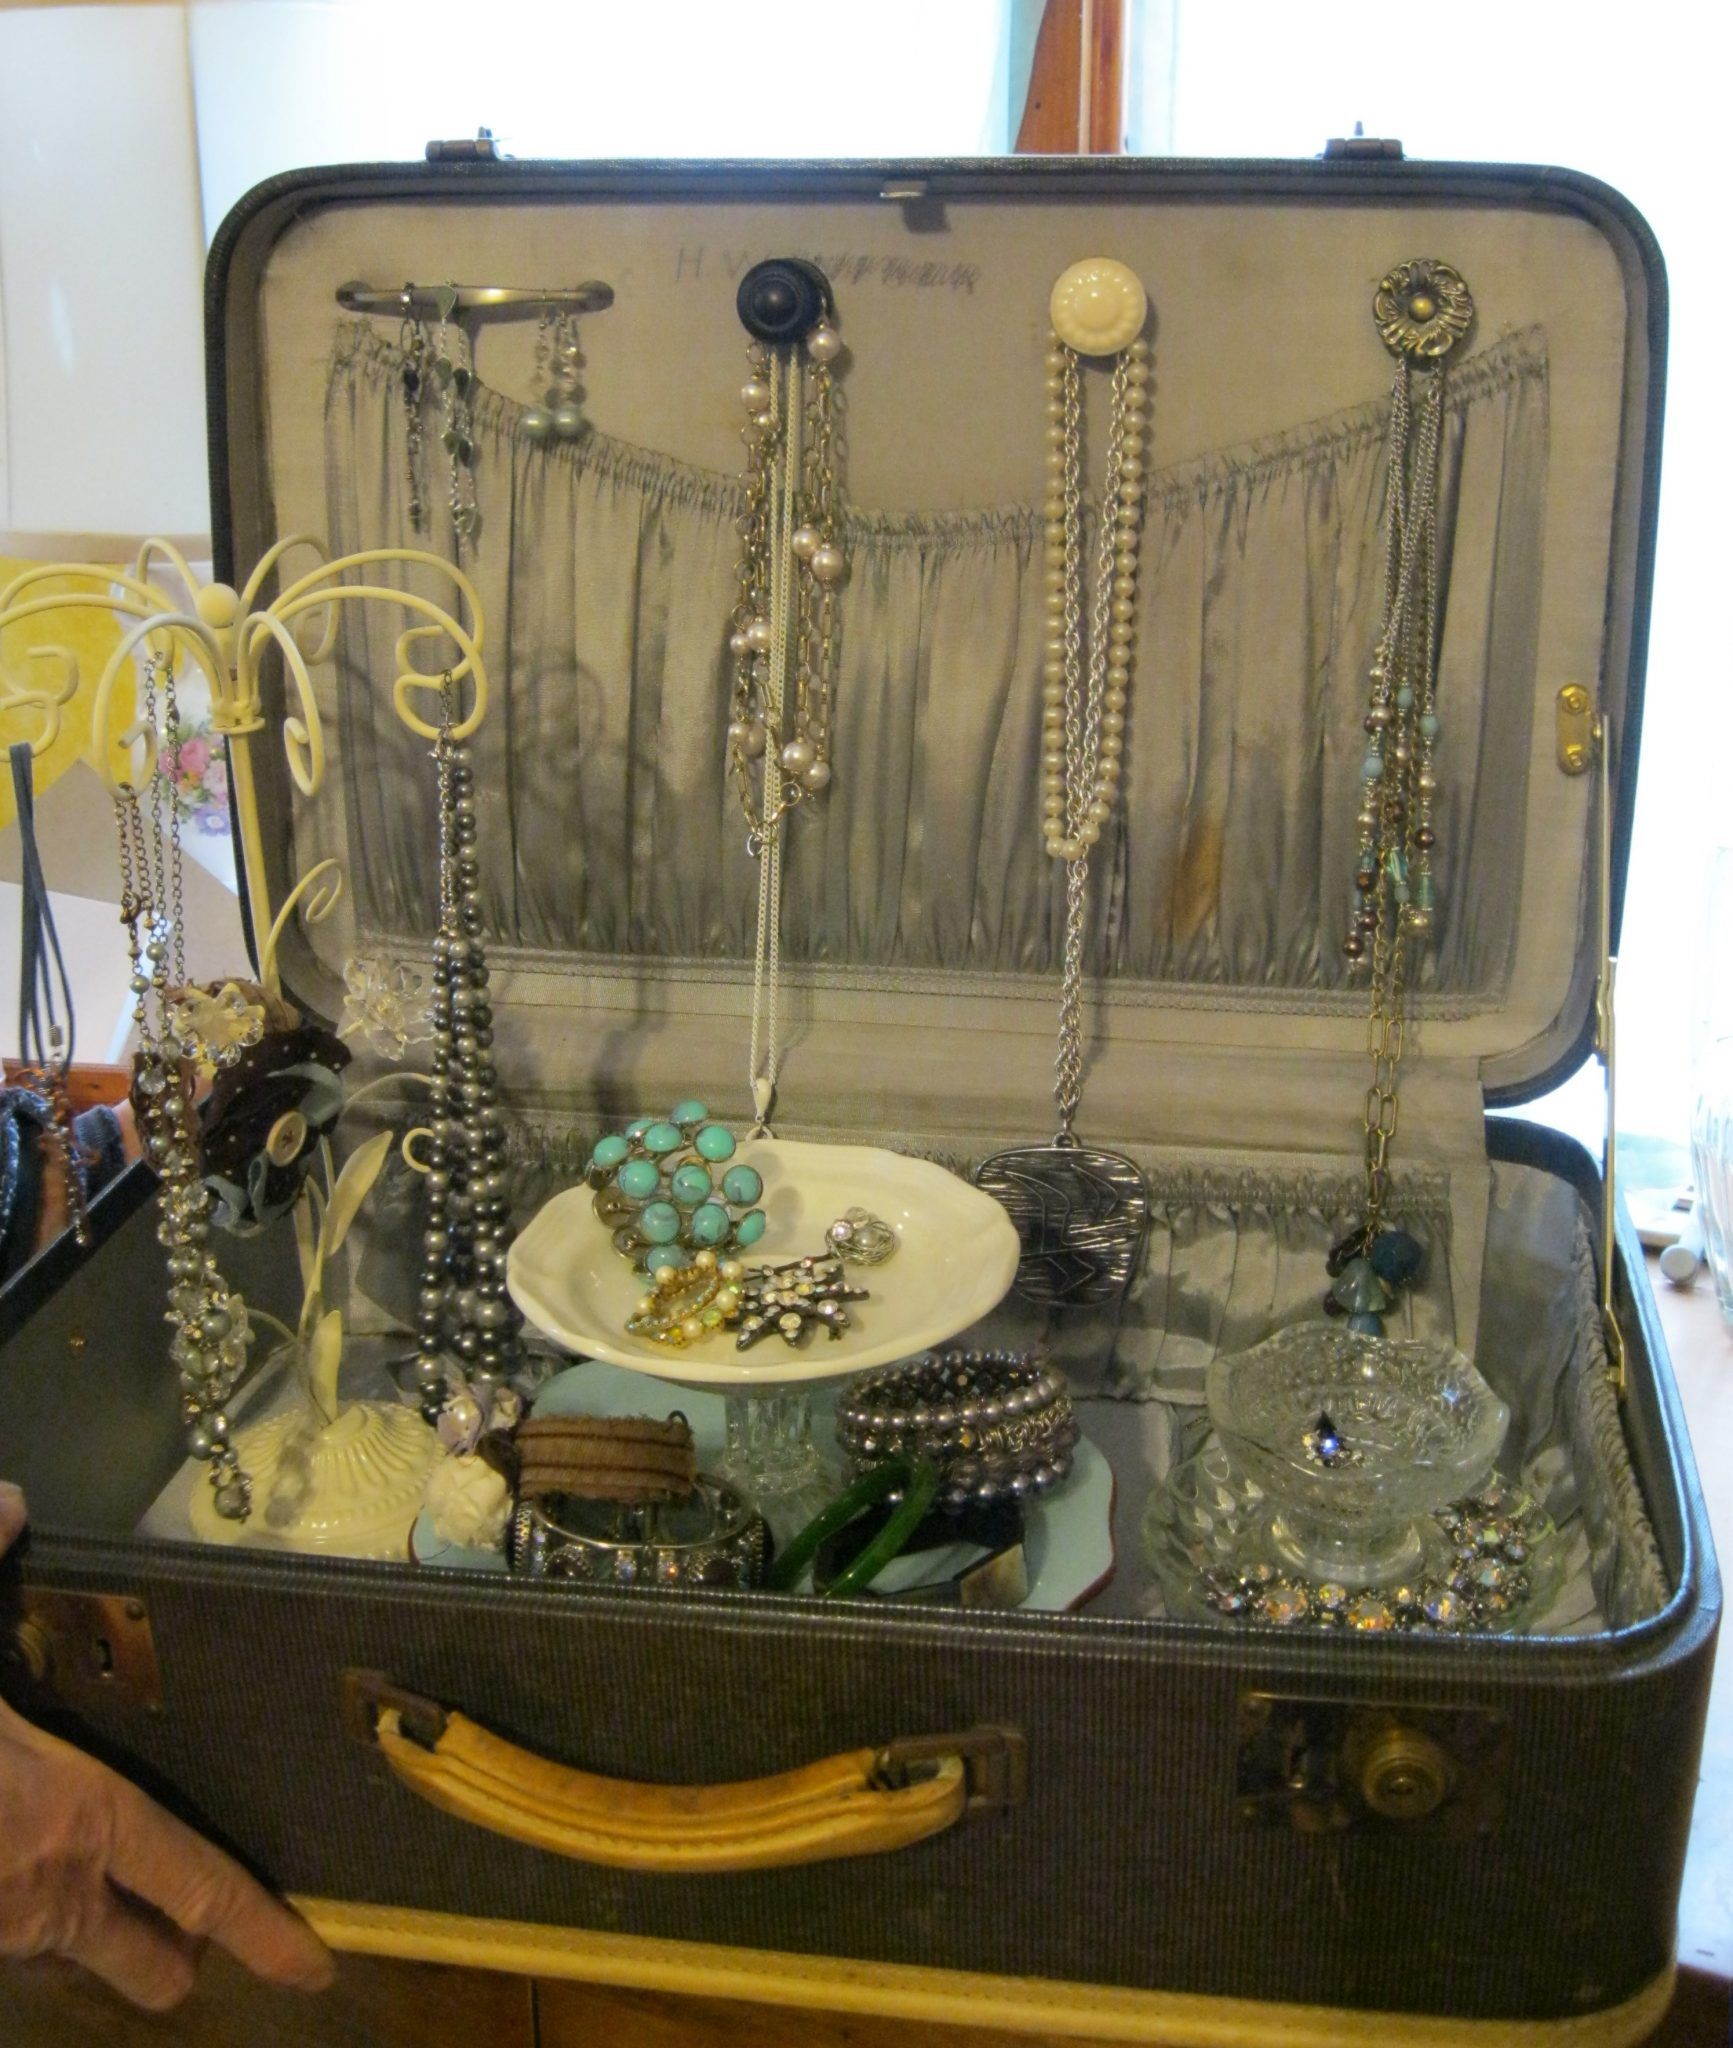 Vintage suitcase jewelry display product display for Jewelry displays